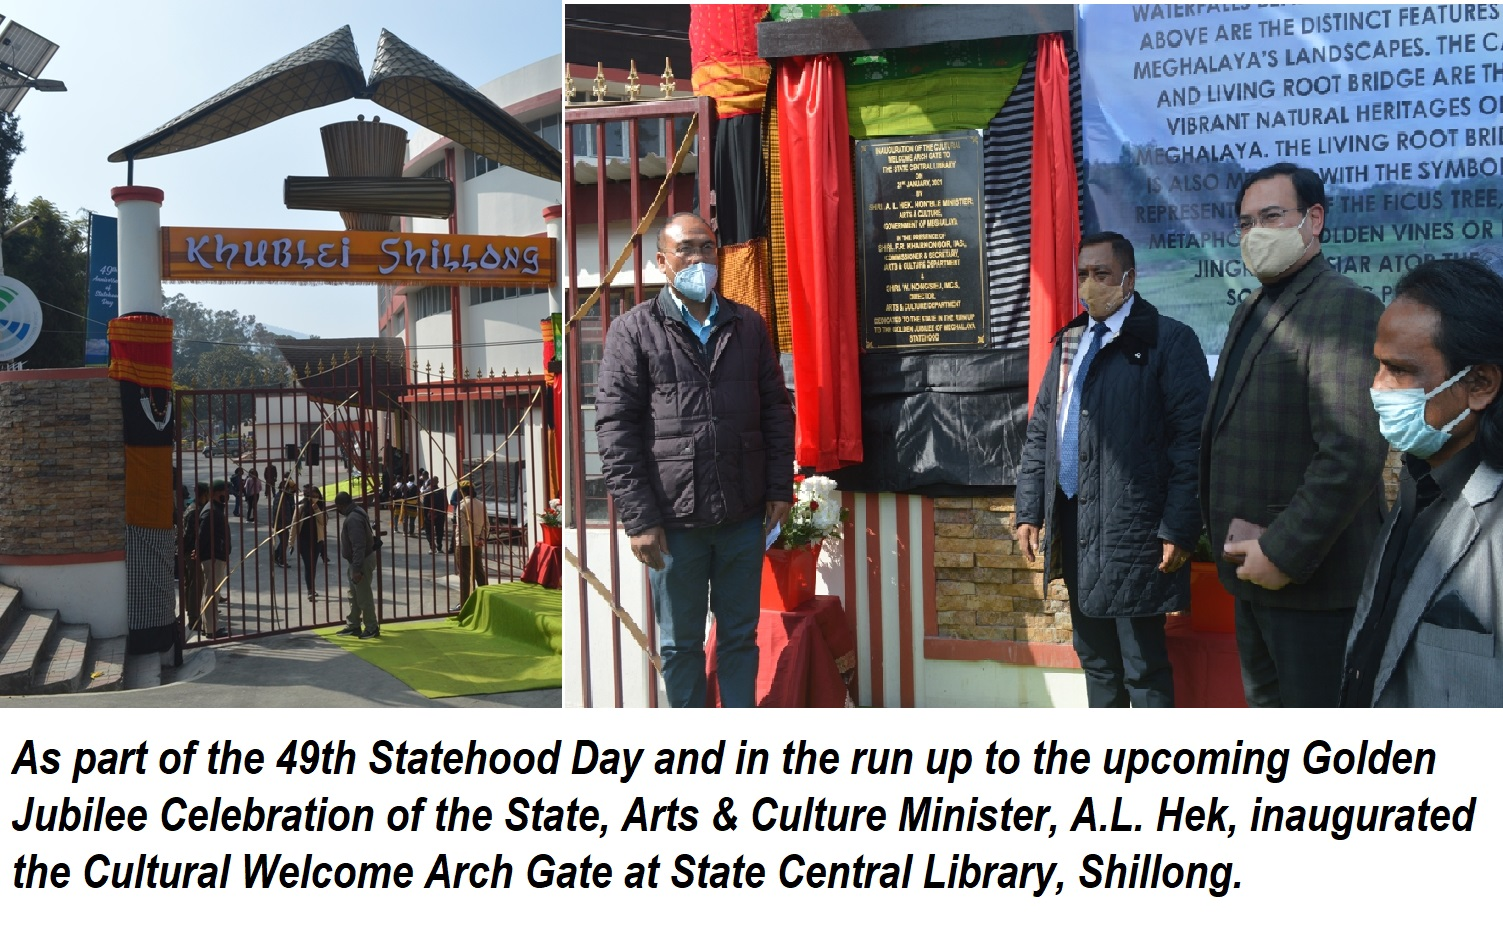 As part of the 49th Statehood Day and in the run up to the upcoming Golden Jubilee Celebration of the State, Arts & Culture Minister, Shri A.L. Hek, inaugurated the Cultural Welcome Arch Gate at State Central Library, Shillong on 21.01.2021.